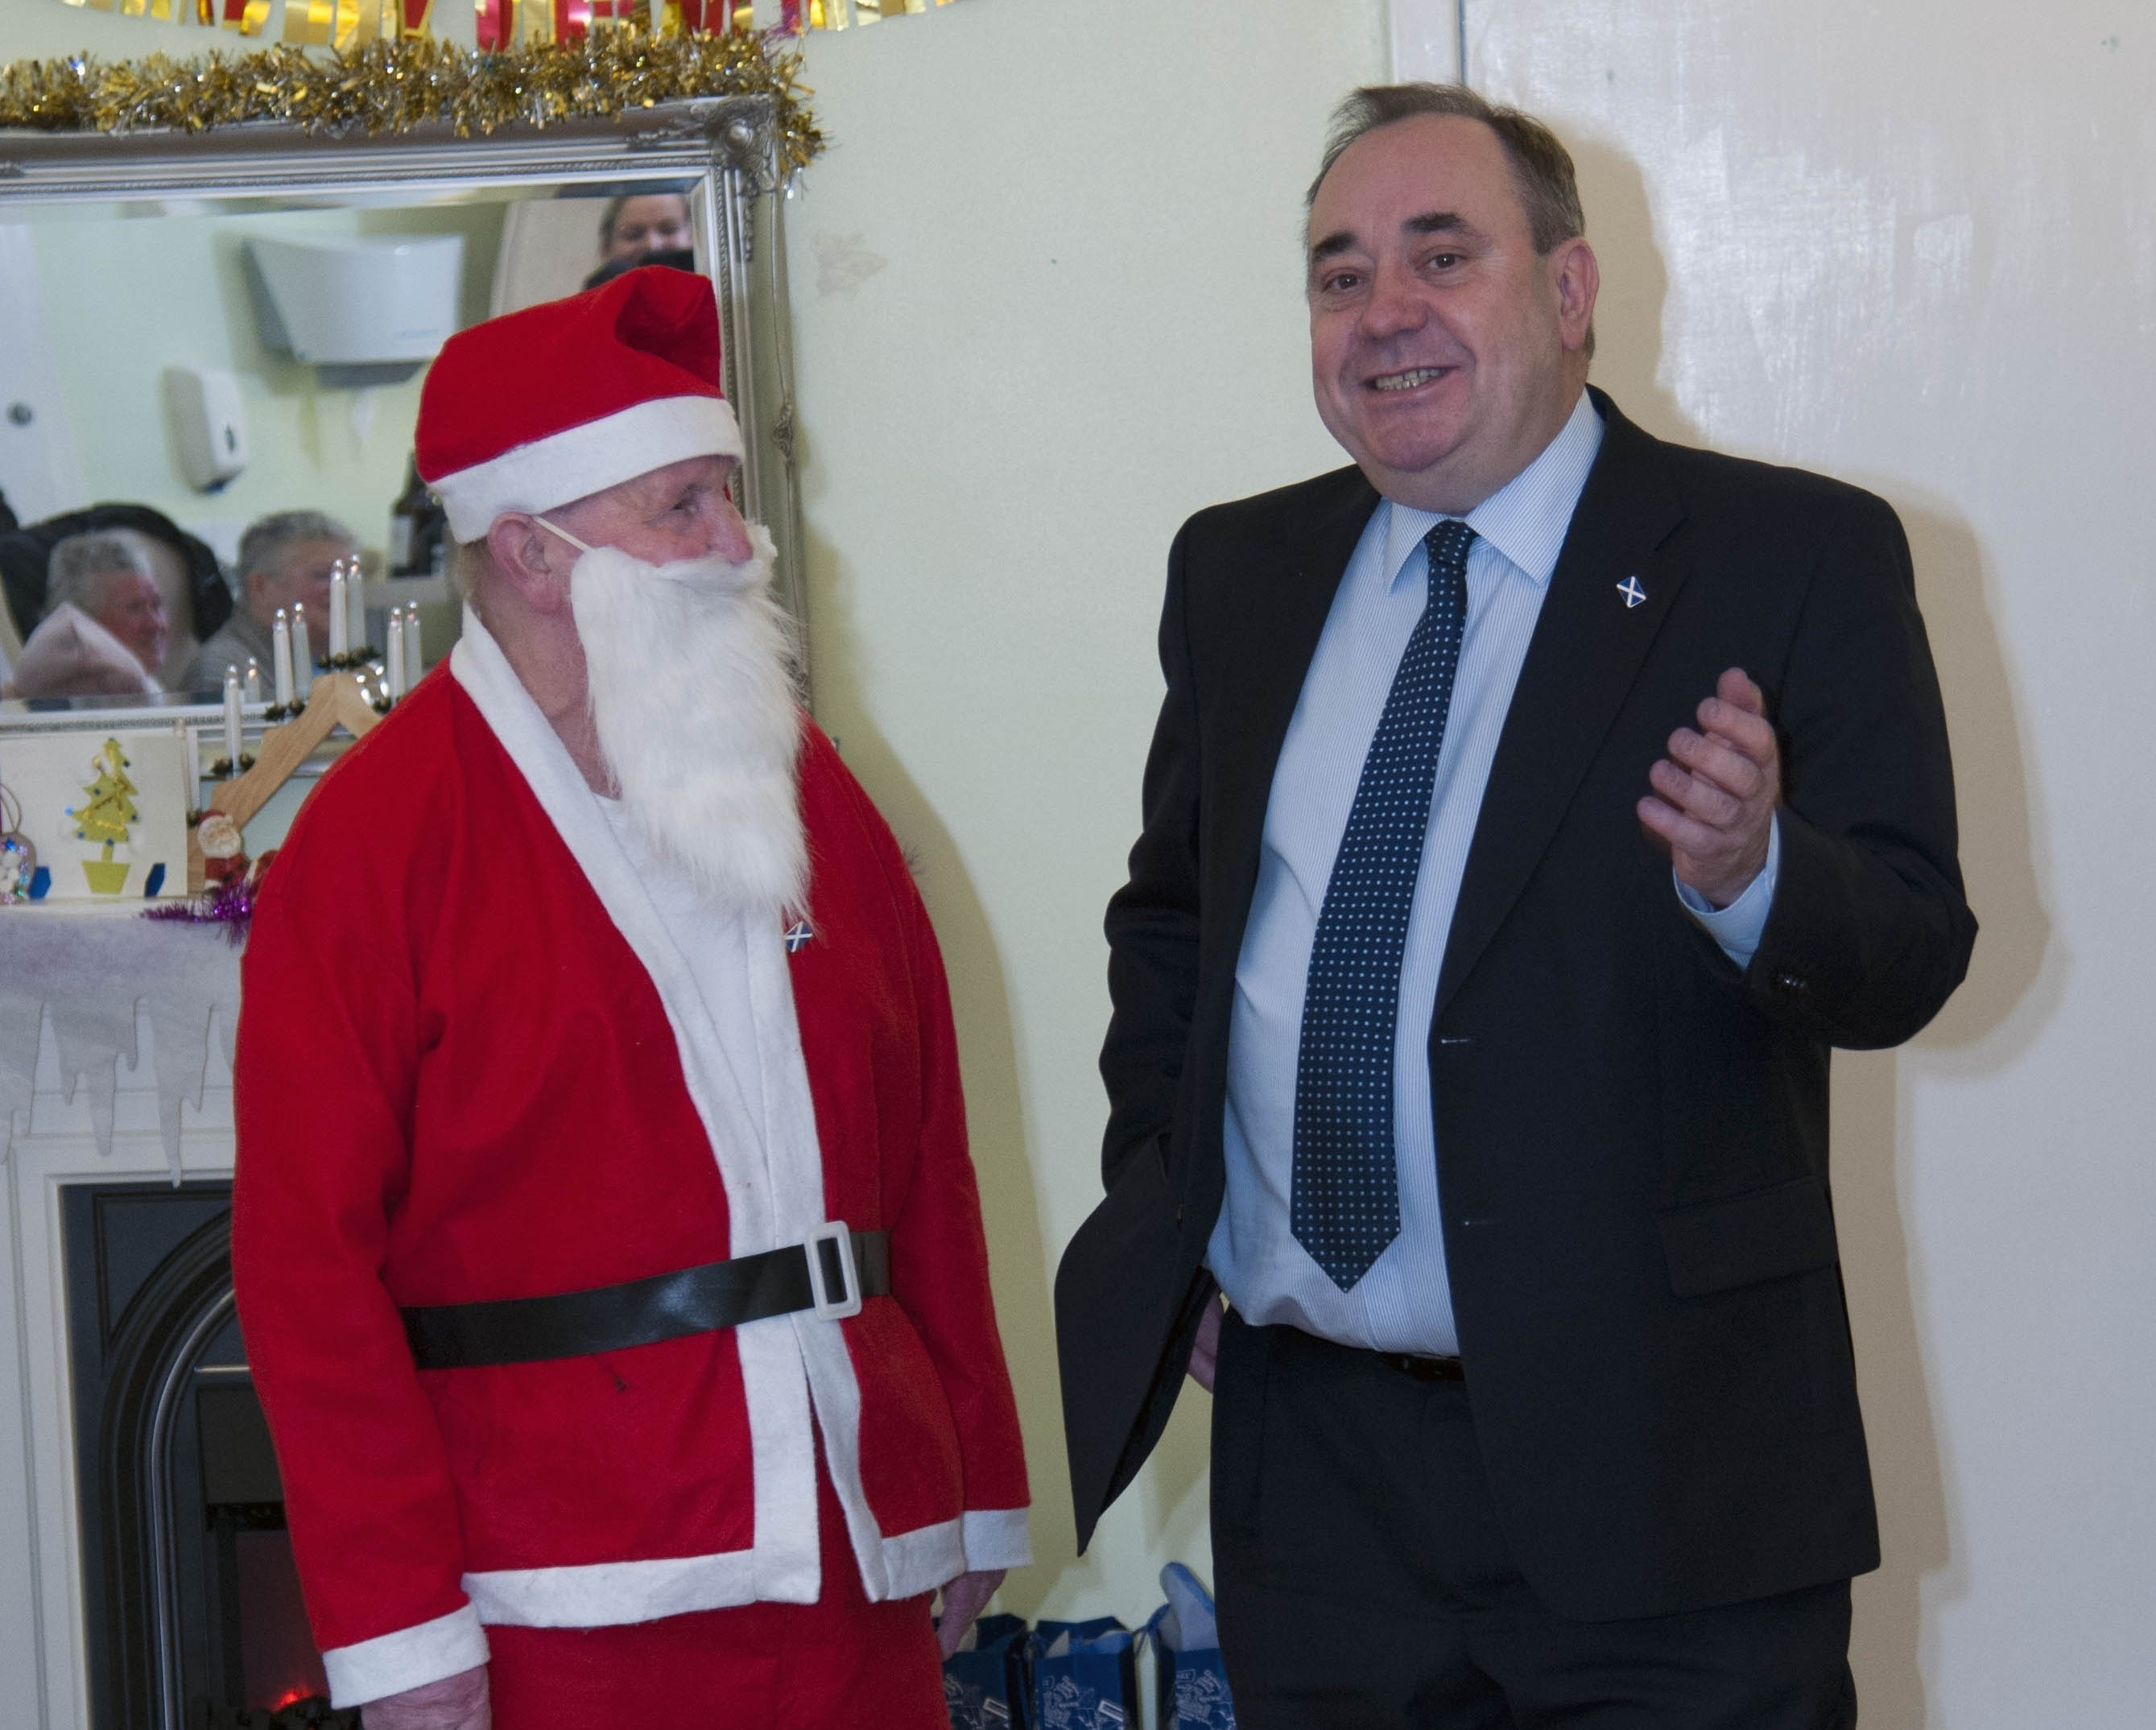 Alex Salmond tells Santa about the Sat Nav that he is hoping for